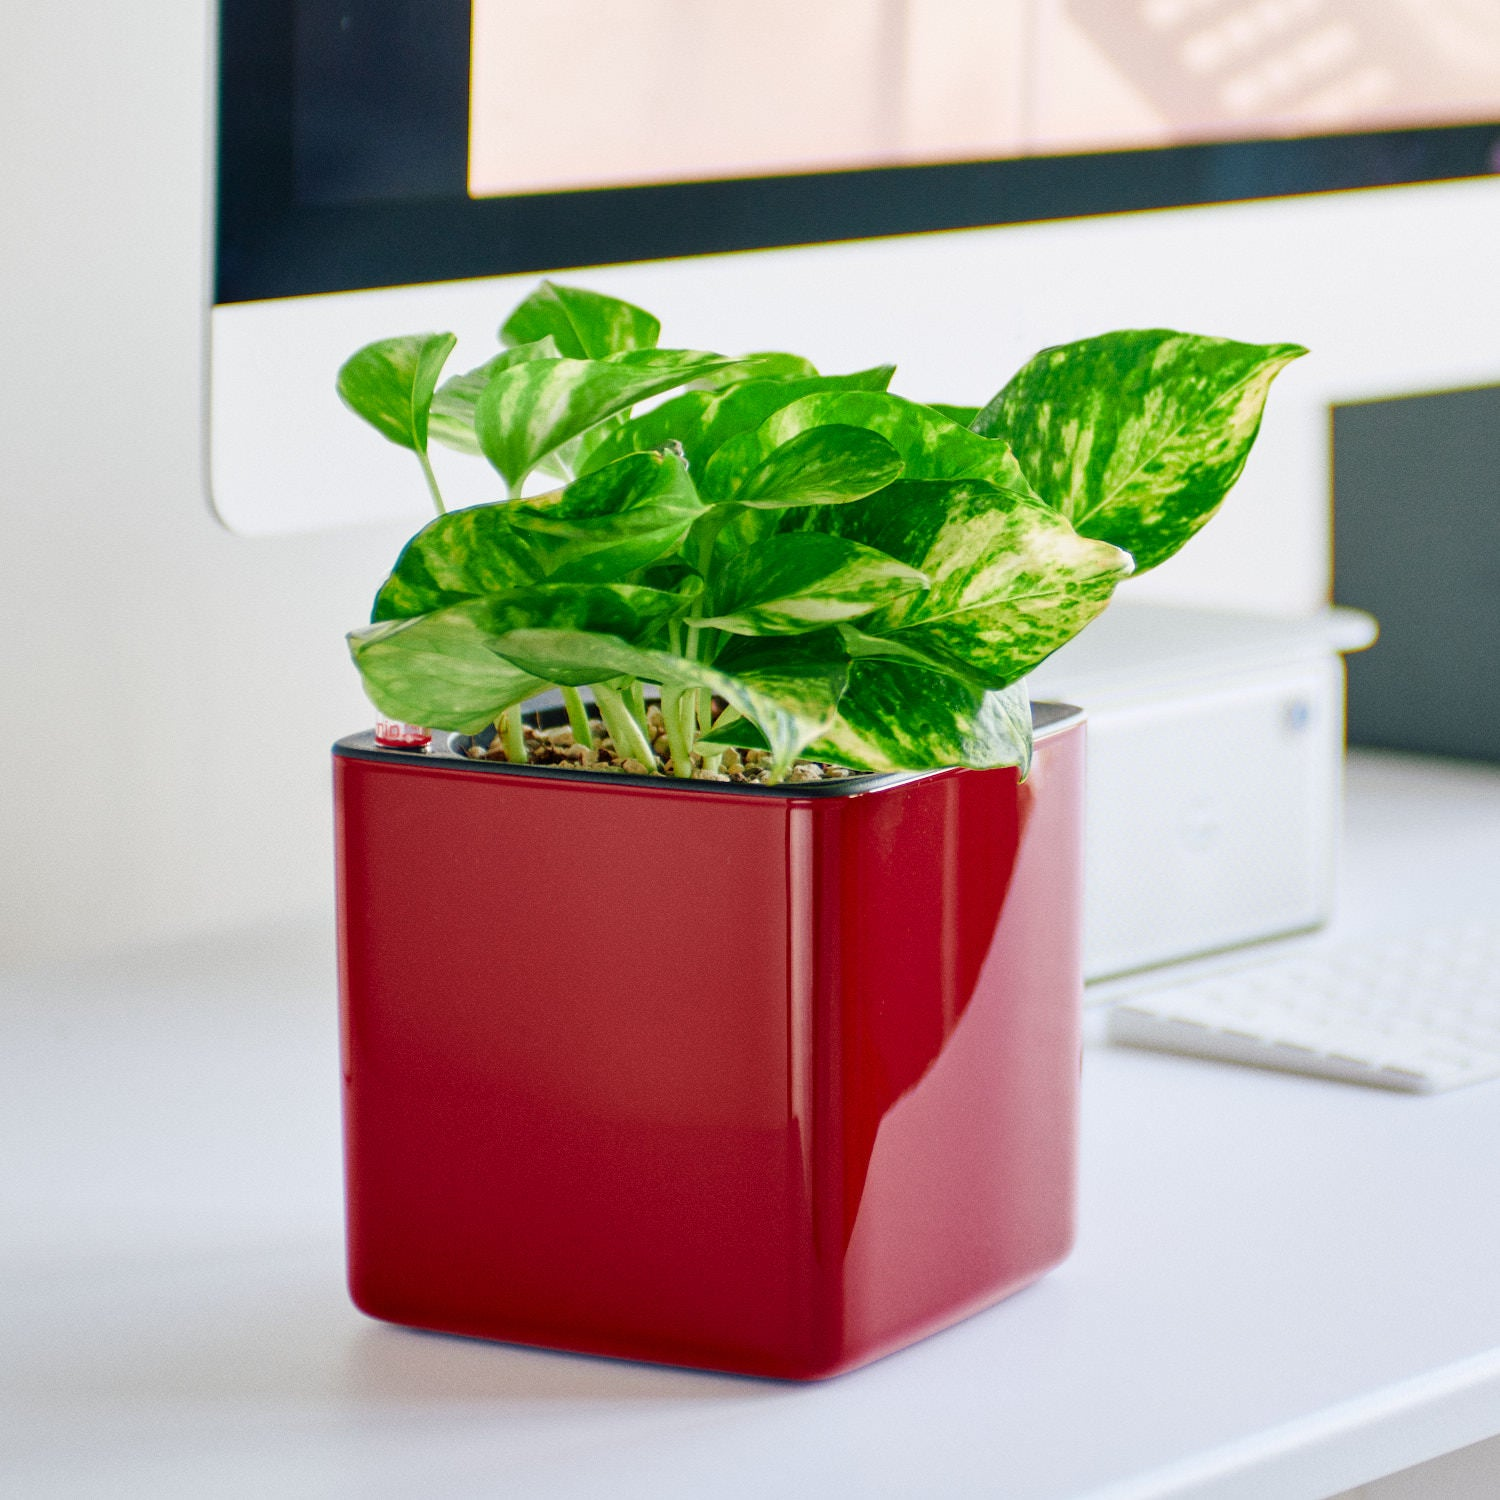 Pothos Variegated In Lechuza Cube Glossy Red Planter | My City Plants